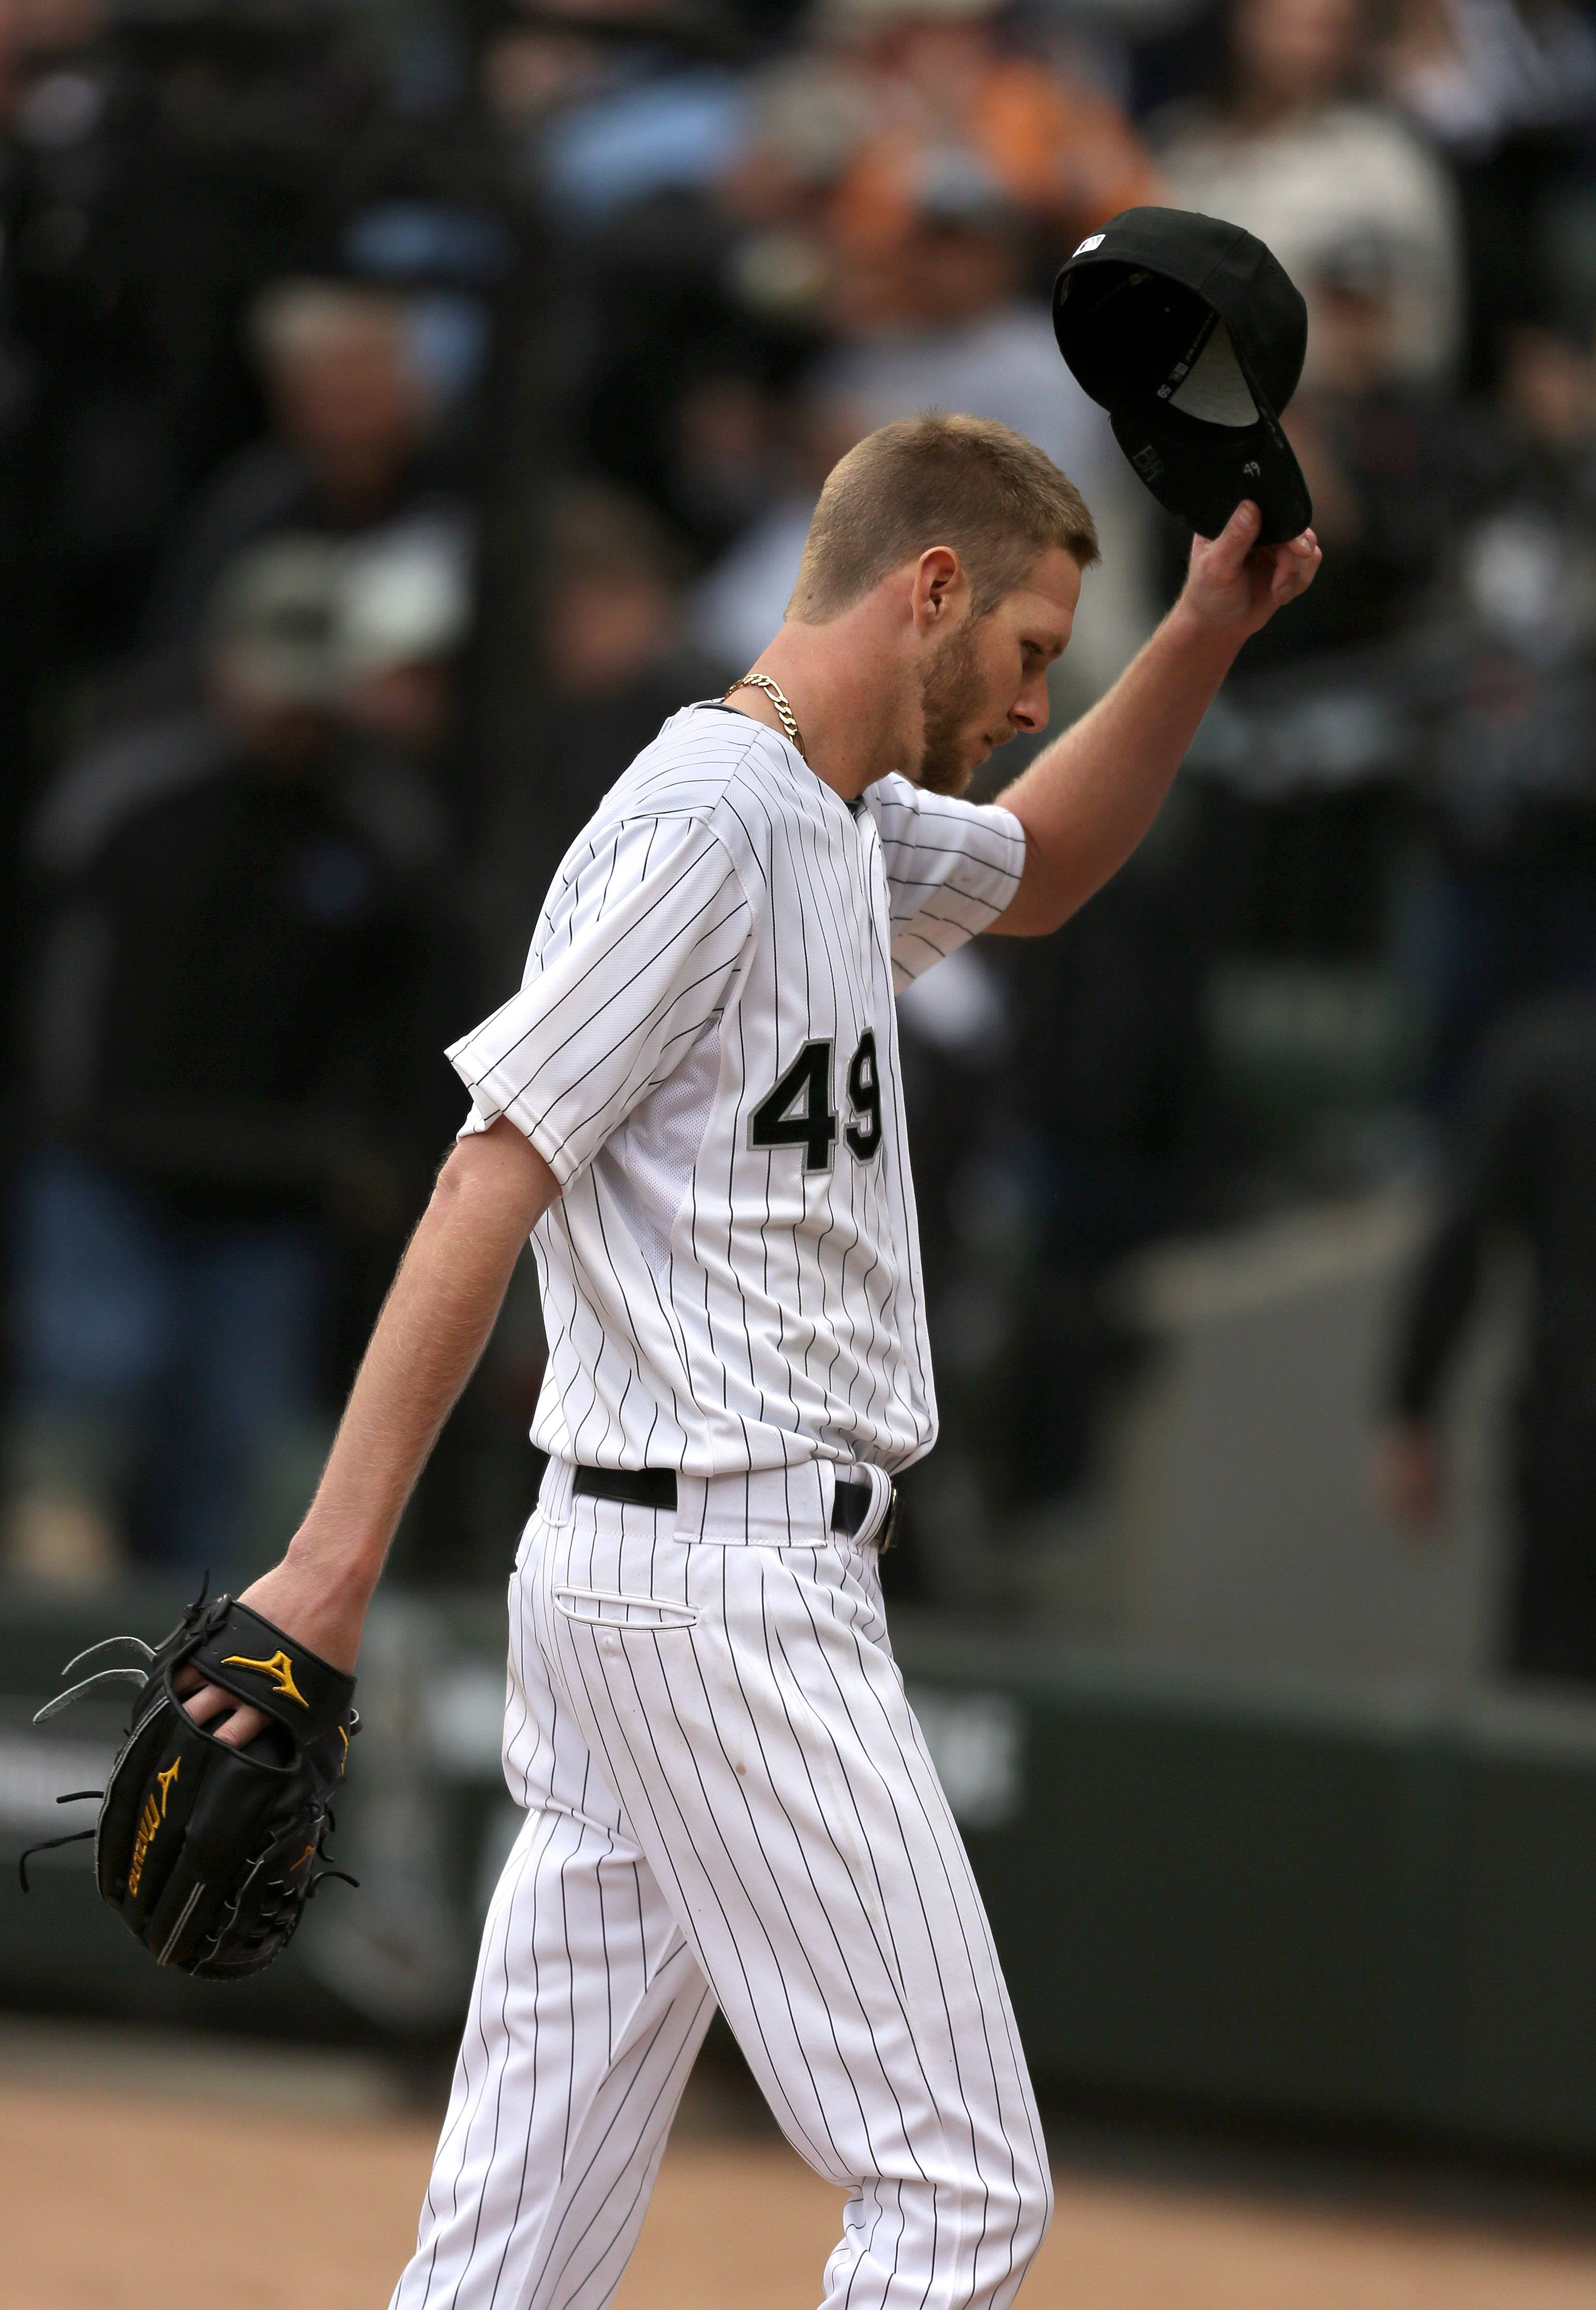 Chicago White Sox starting pitcher Chris Sale tips his cap after coming out of the game in the eighth inning.